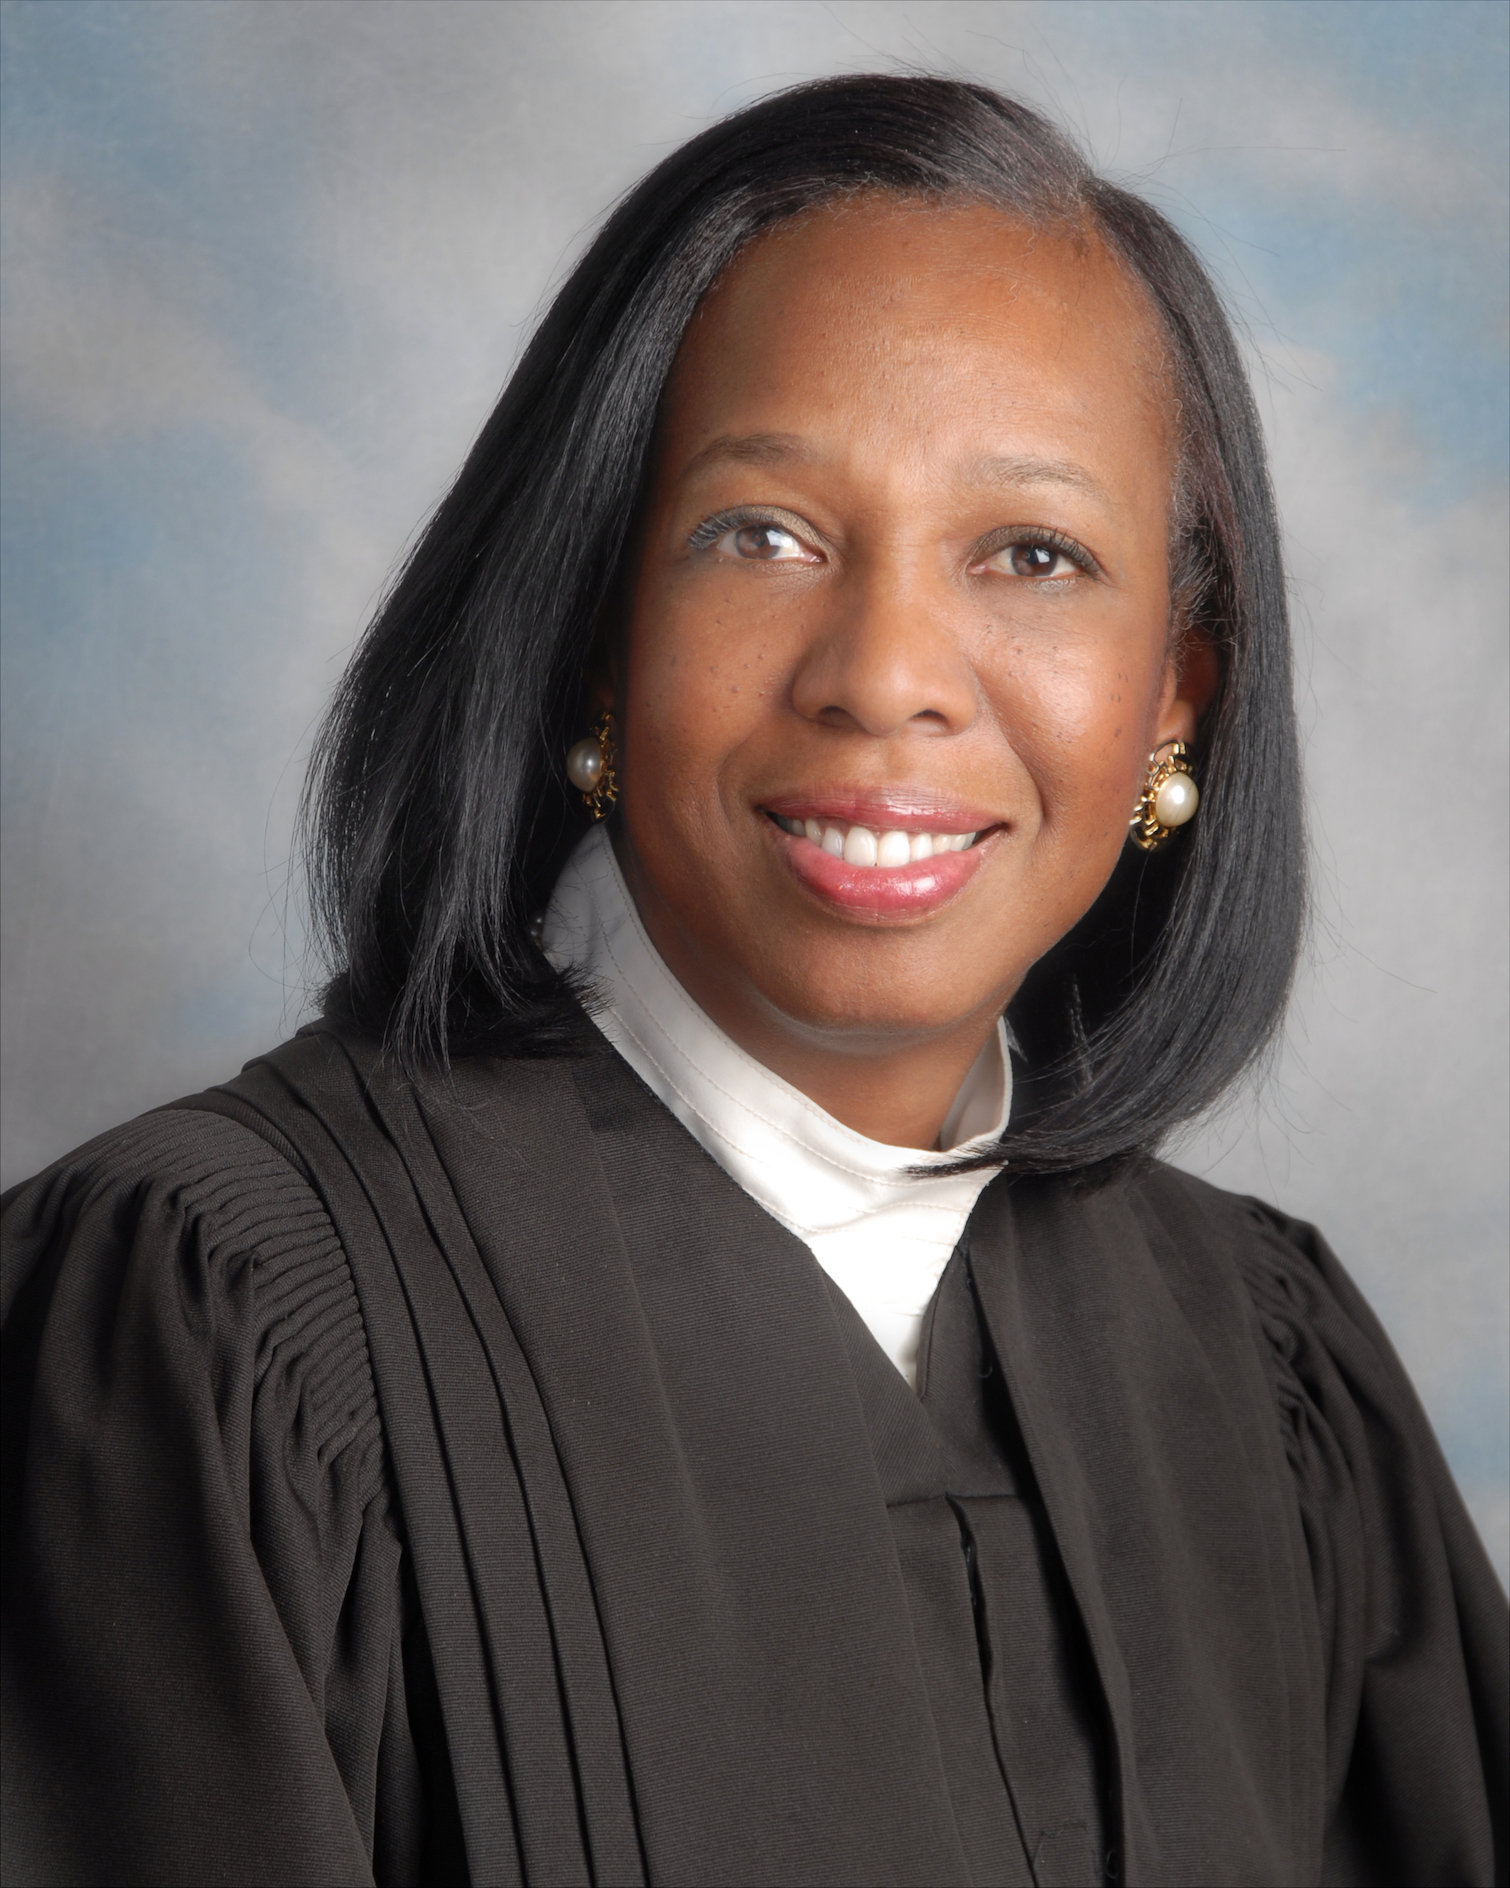 Judge Carla D. Moore will serve as the Commencement speaker for the afternoon ceremony at Kent State University.